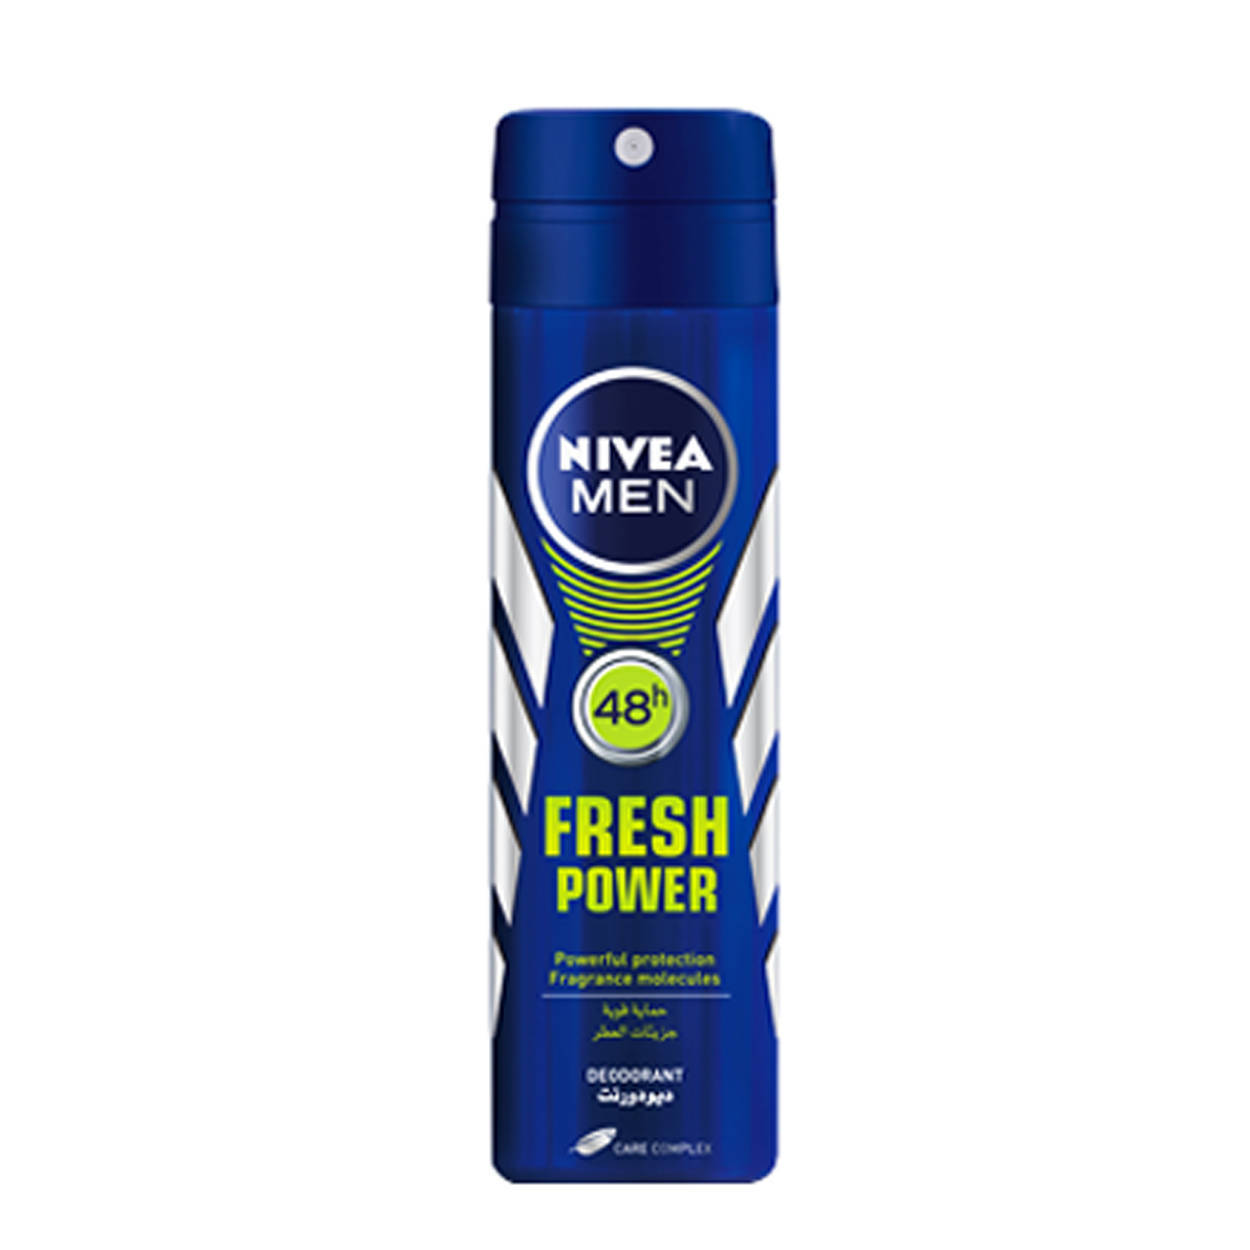 Nivea Men Fresh Power Body Spray 150ml